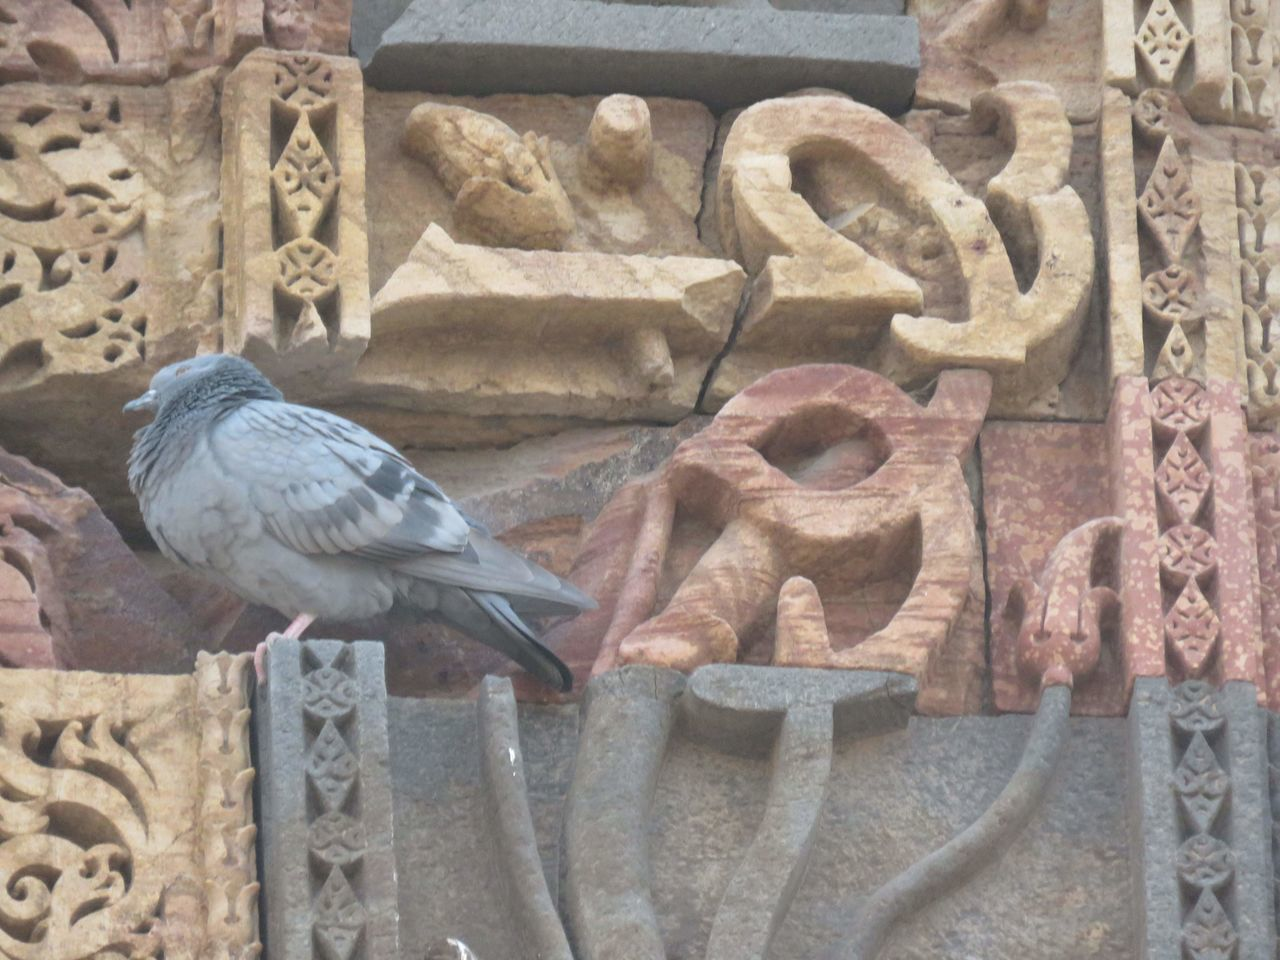 bird, animal themes, perching, close-up, no people, one animal, built structure, day, outdoors, animals in the wild, architecture